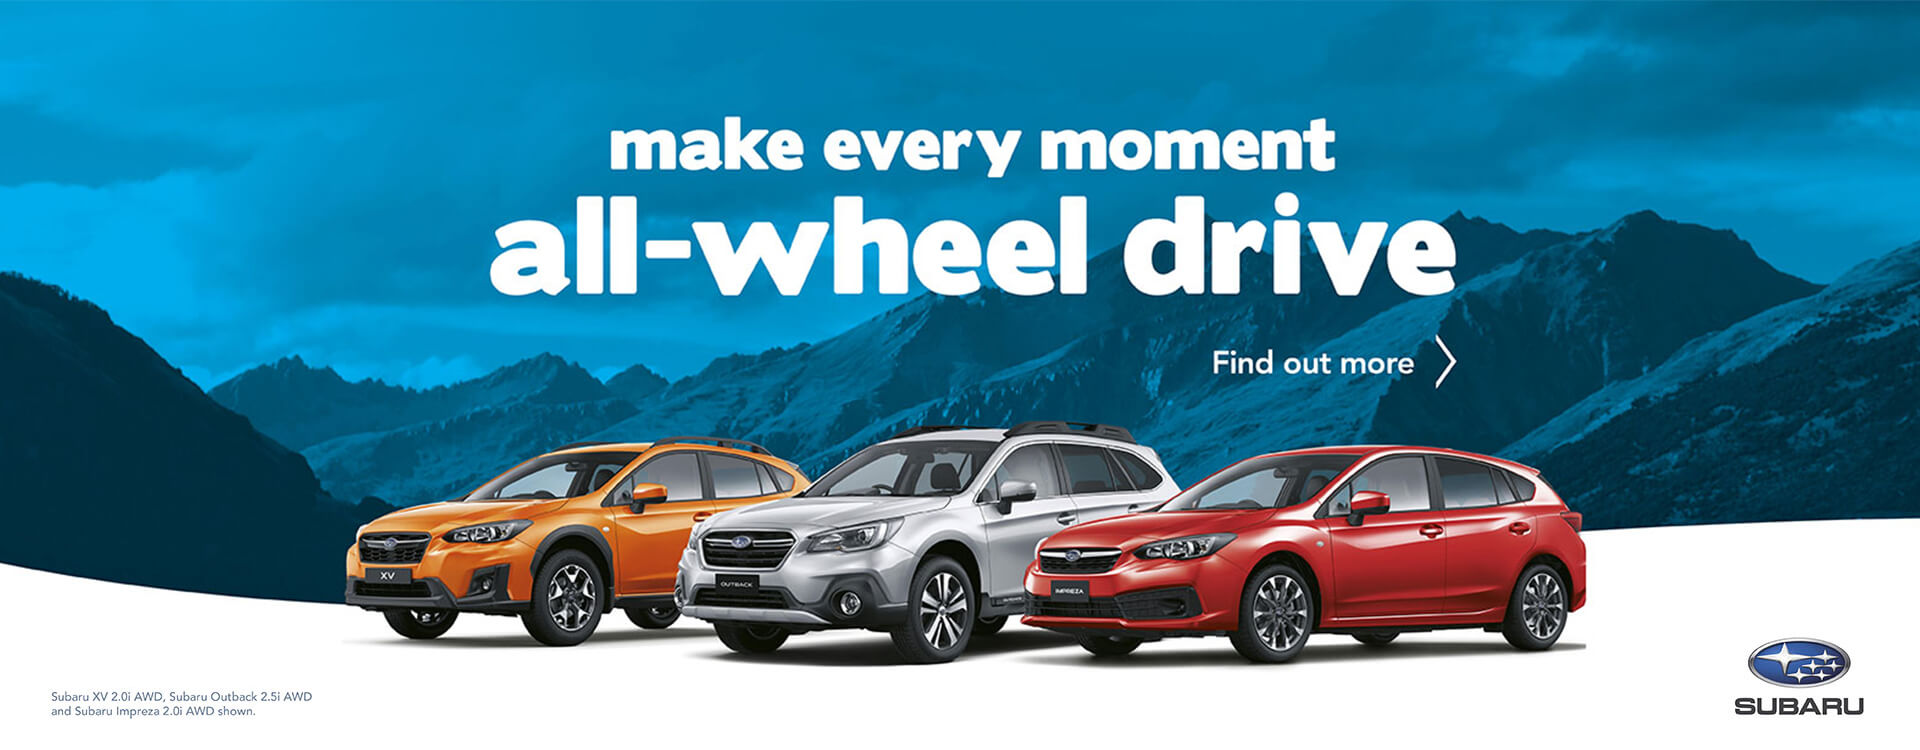 Make every moment all-wheel drive with Subaru.